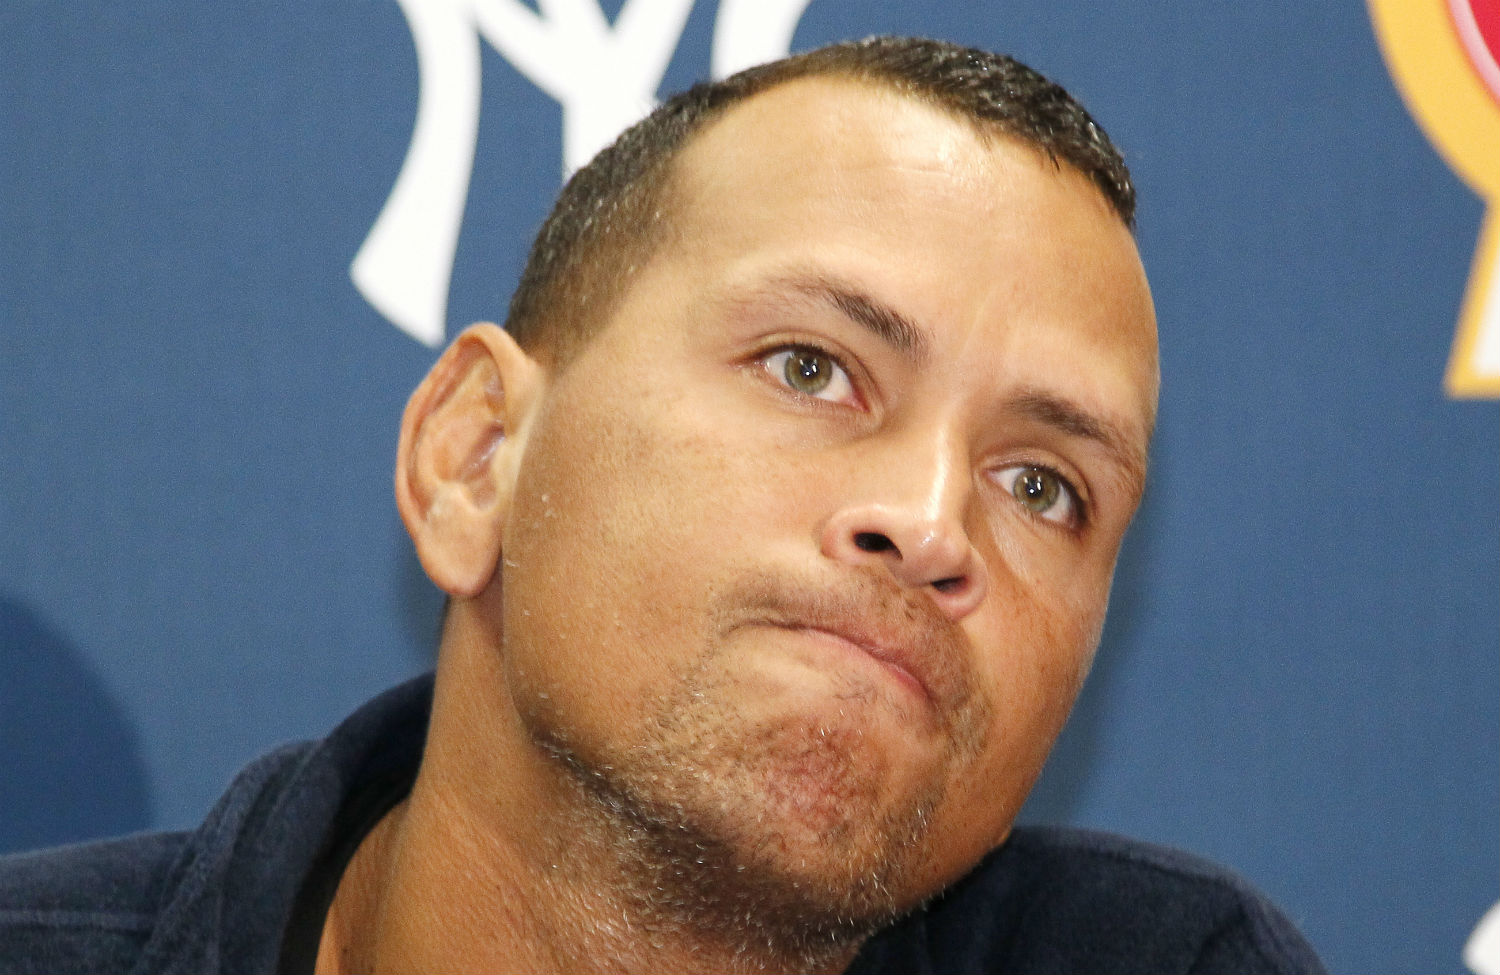 pNew-York-Yankee-third-baseman-Alex-Rodriguez-at-a-news-conference-in-August-2013p